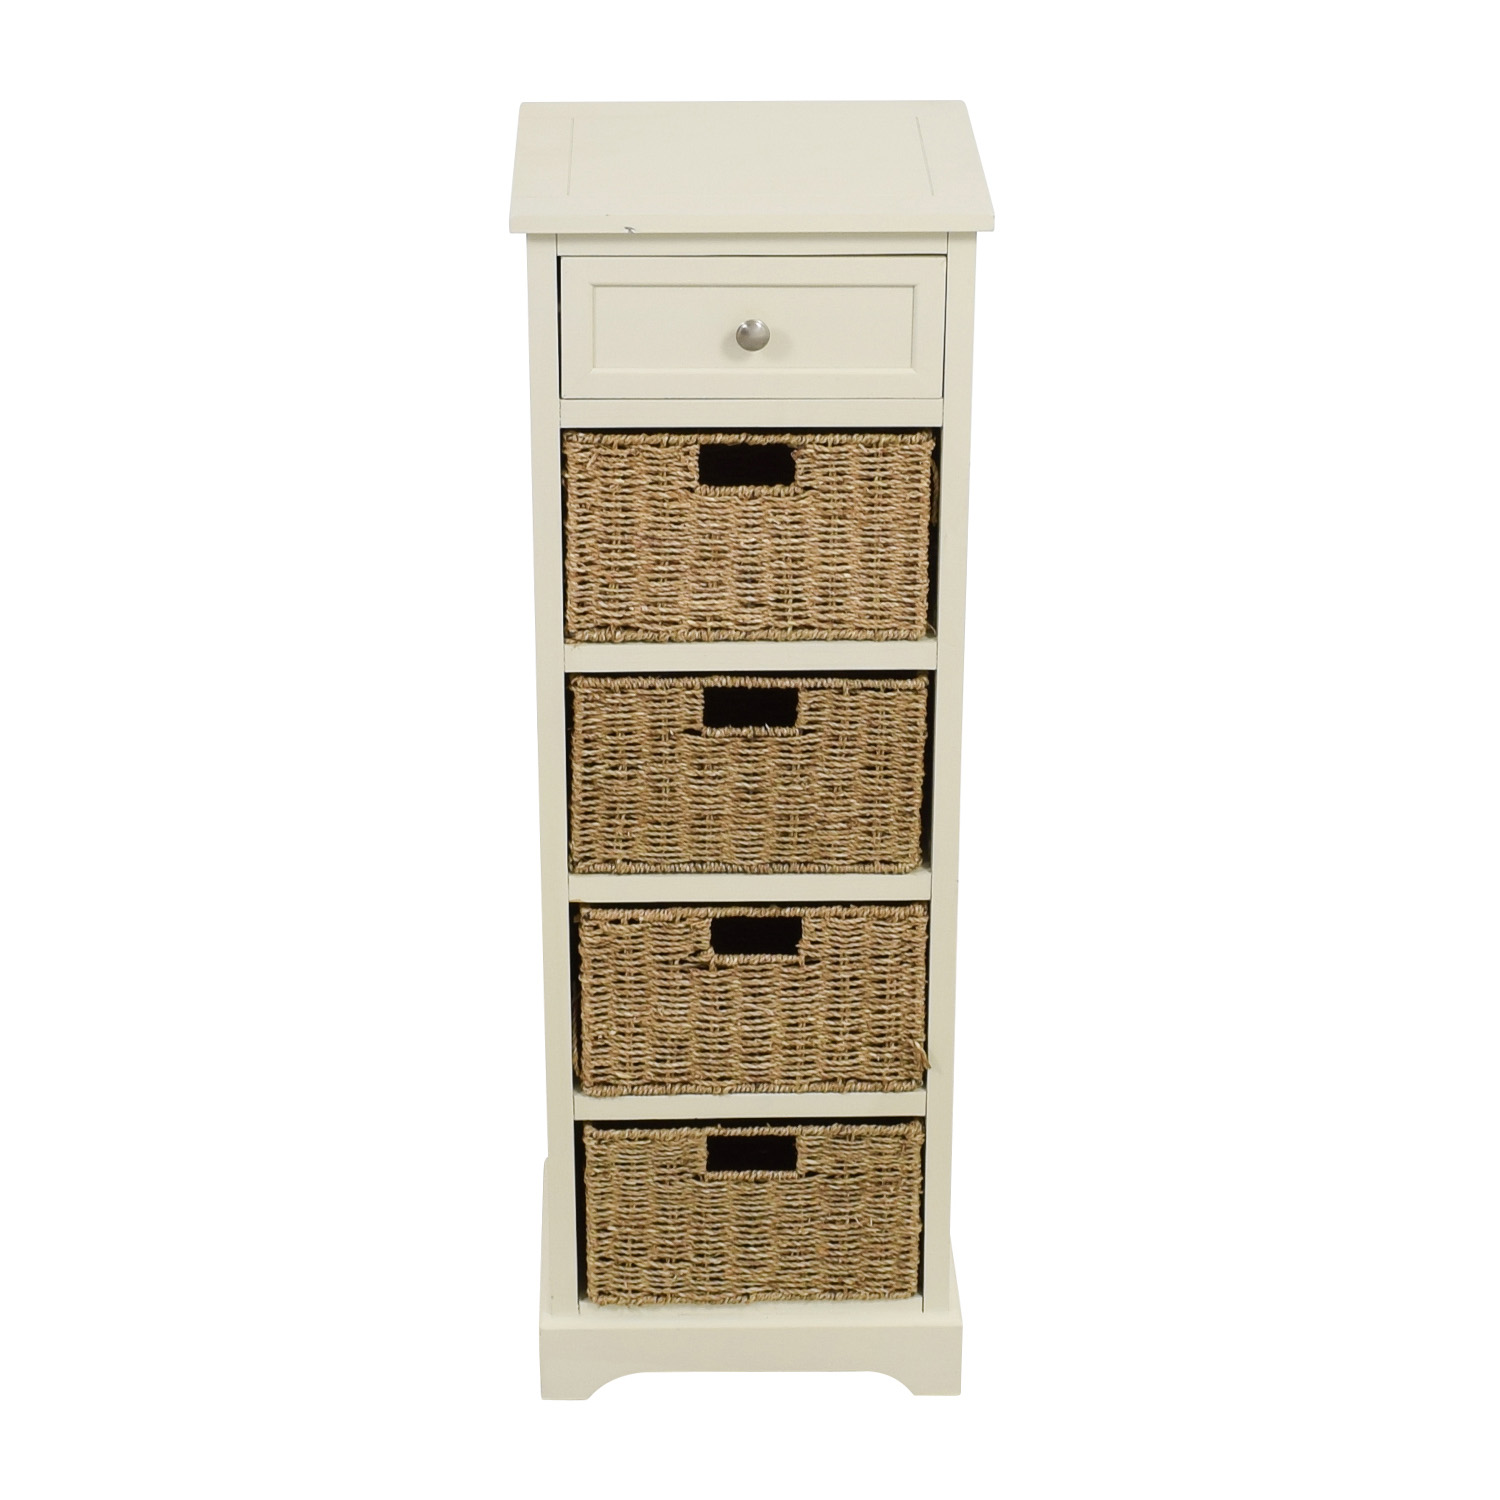 ... Tall White Storage Unit With Drawer And Wicker Baskets Discount ...